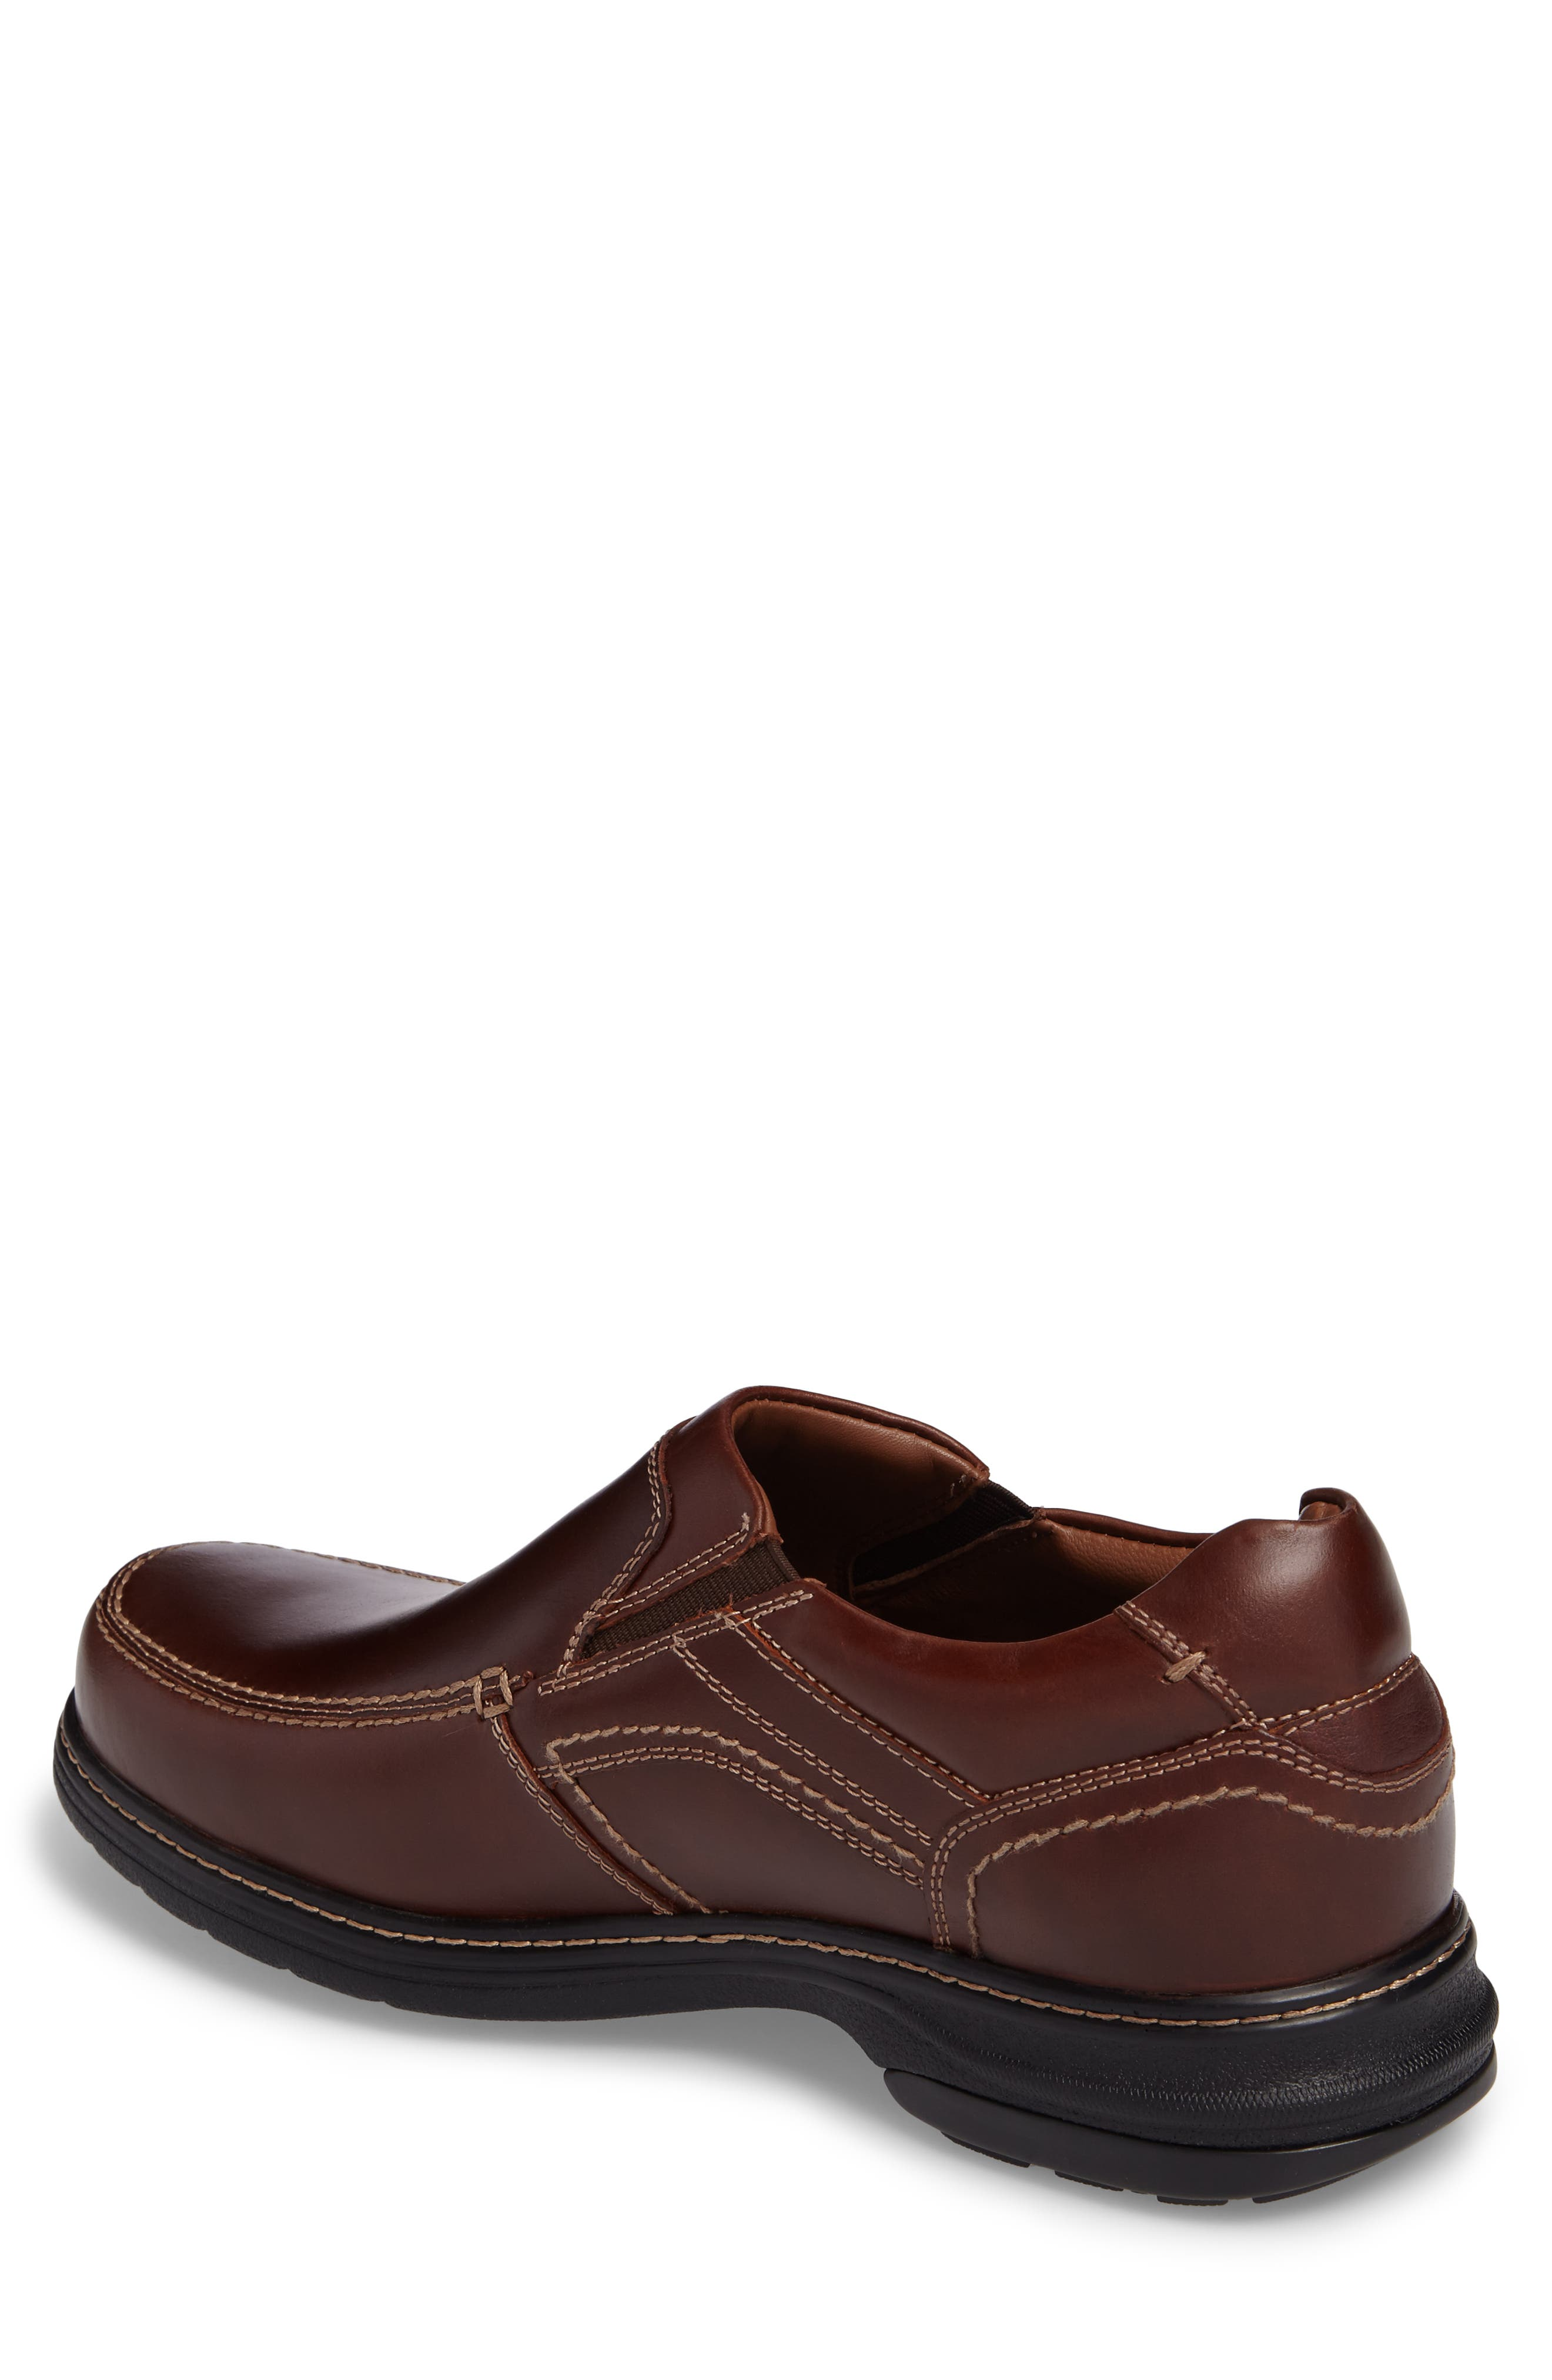 Windham Waterproof Venetian Loafer,                             Alternate thumbnail 2, color,                             MAHOGANY